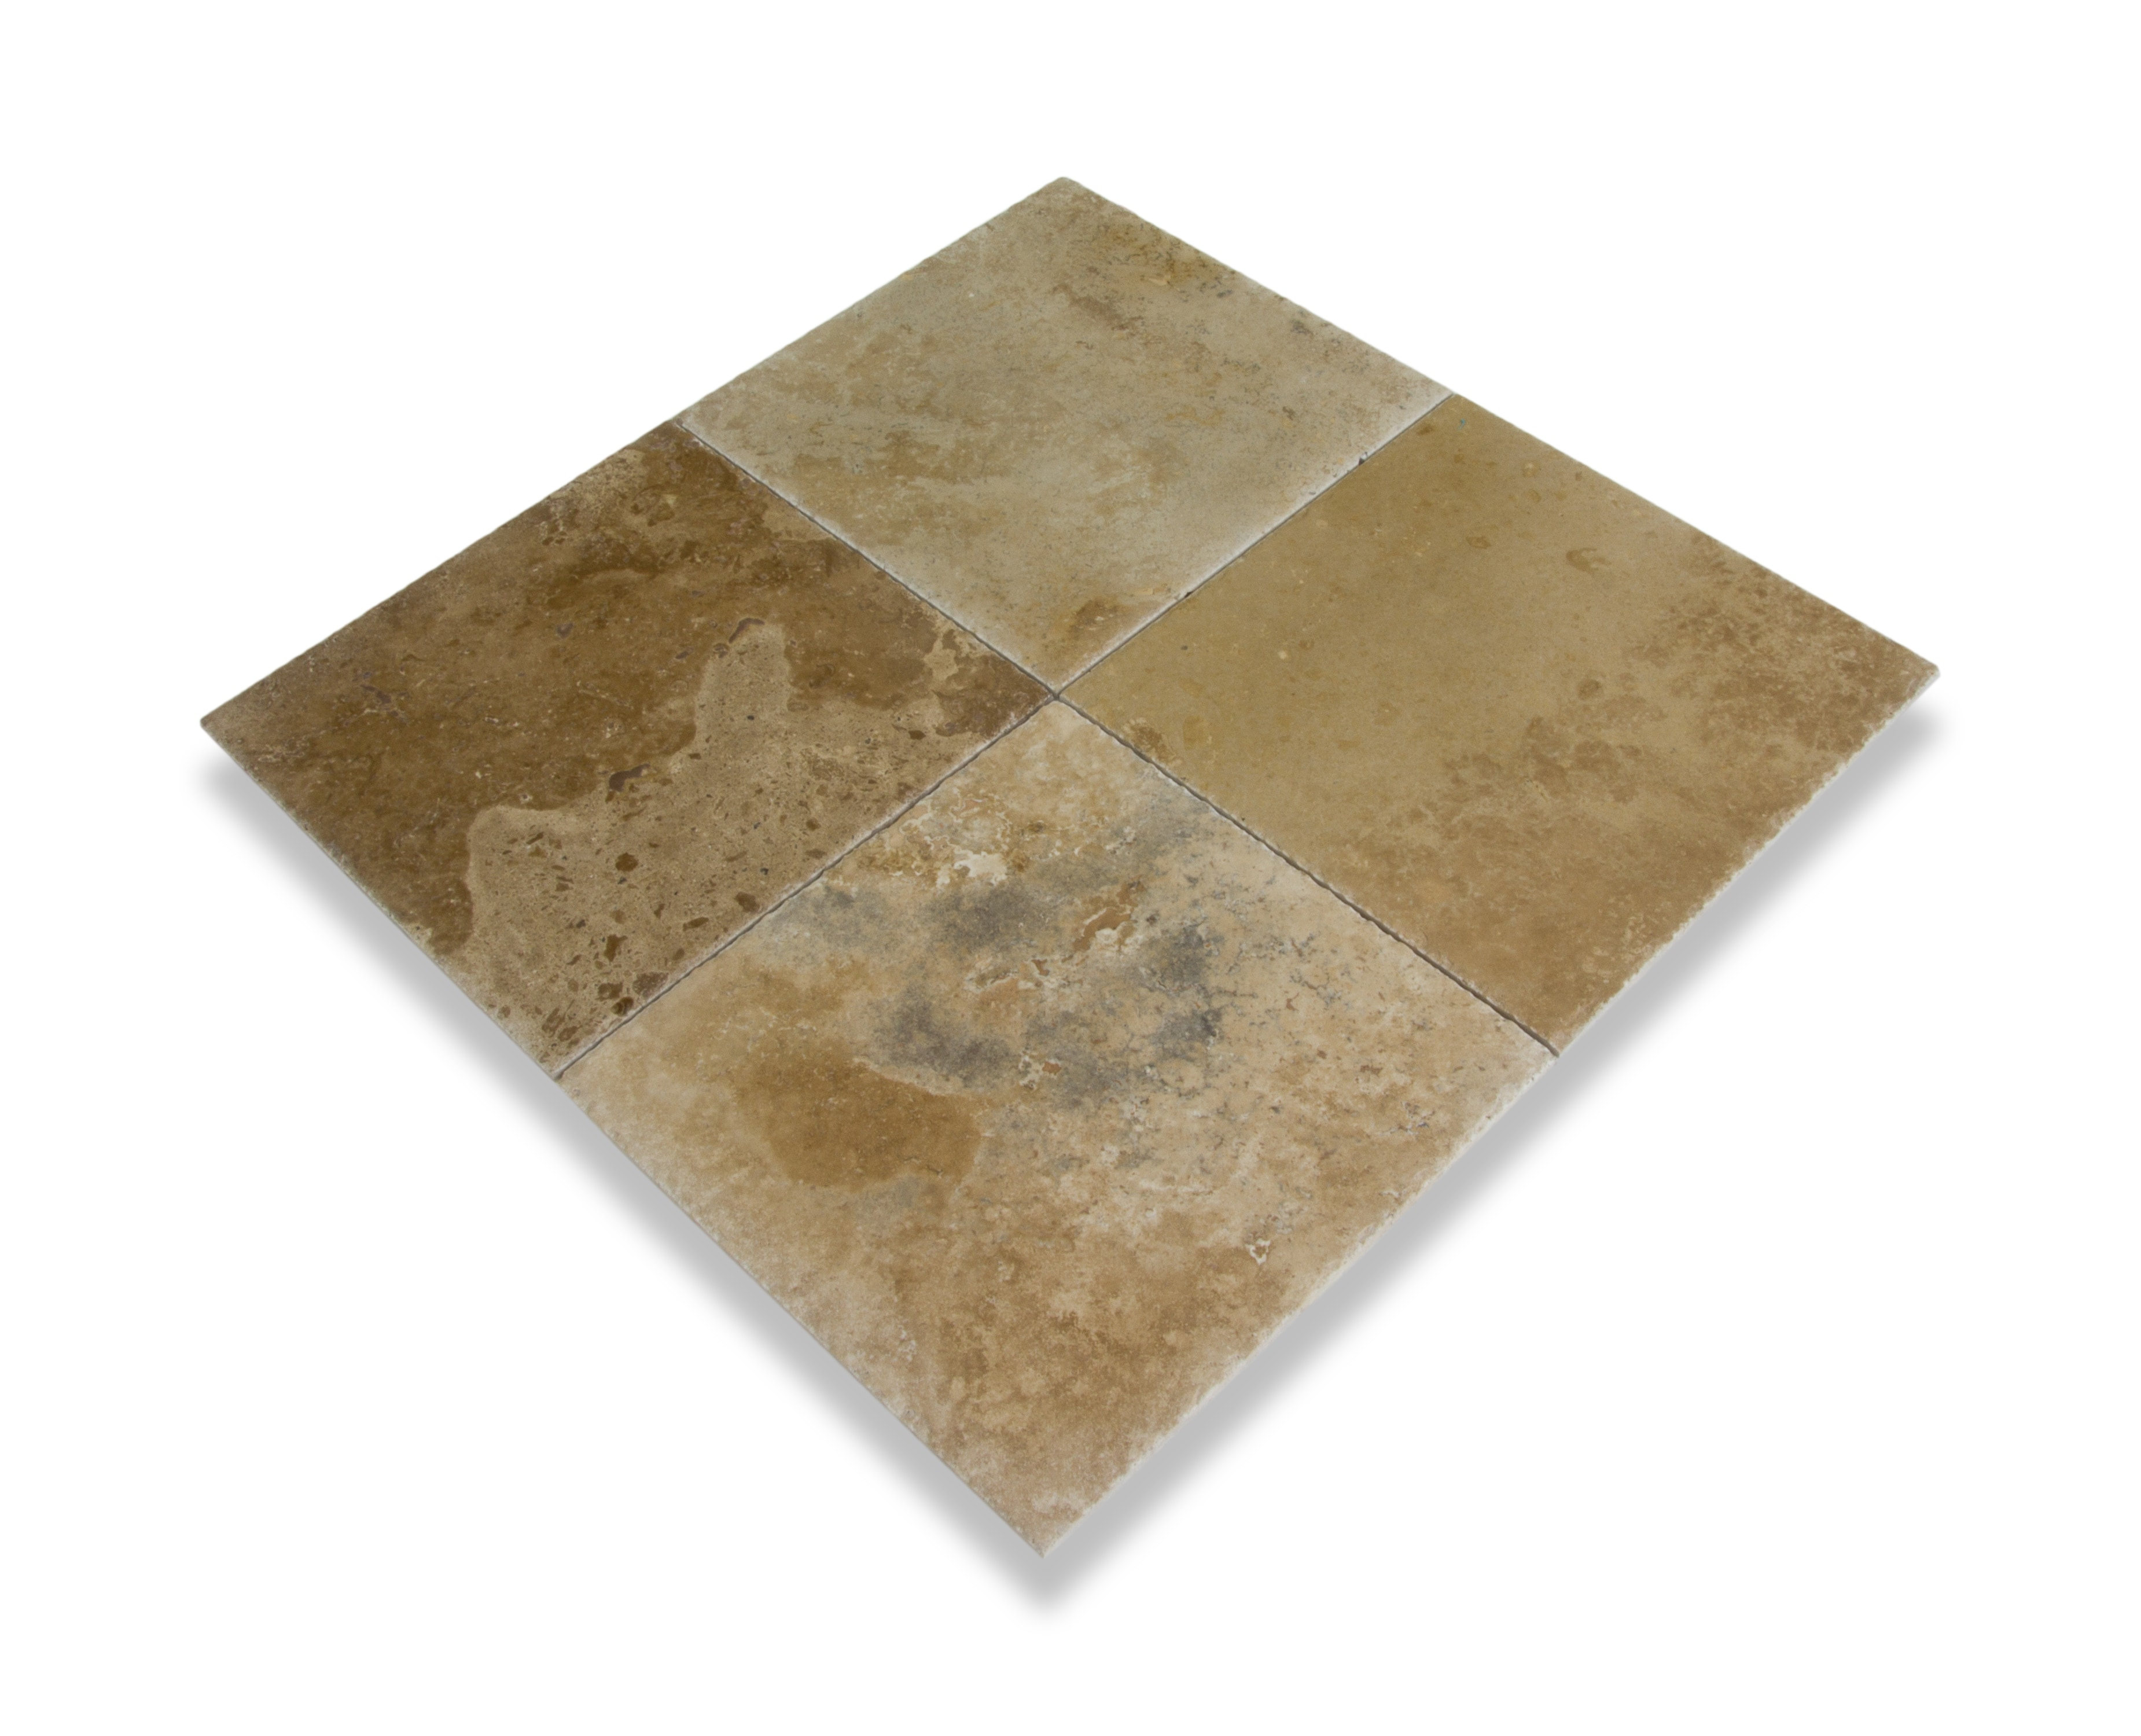 """Volcano Standard / 16""""x16""""x1/2"""" / Brushed and Chiseled Travertine Tile - Brushed and Chiseled 0"""